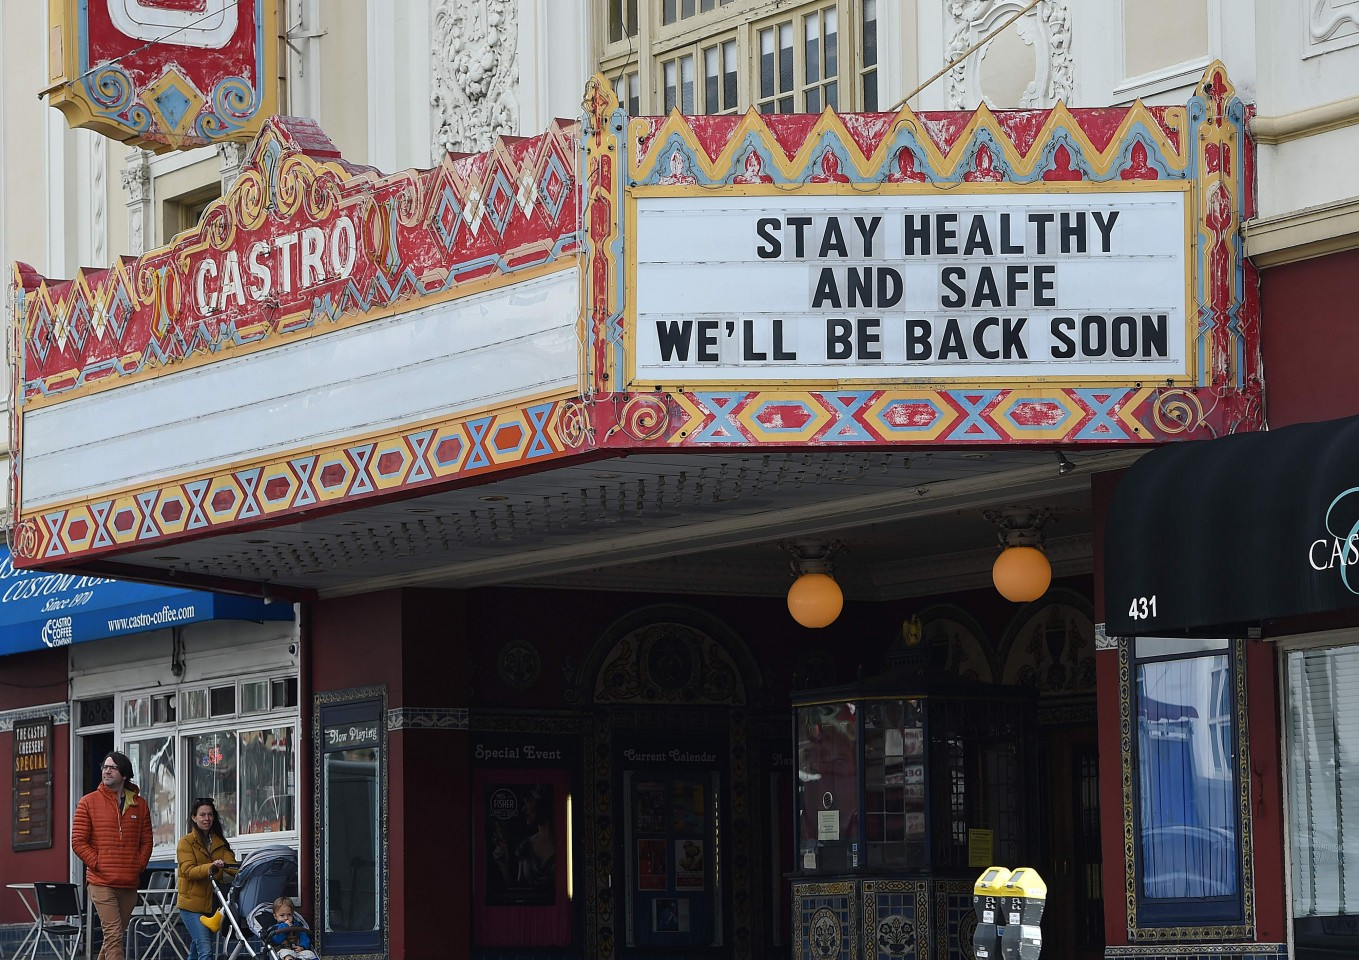 A couple walks by the Castro theater with their baby in San Francisco, California on 17 March 2020. (Josh Edelson/AFP)